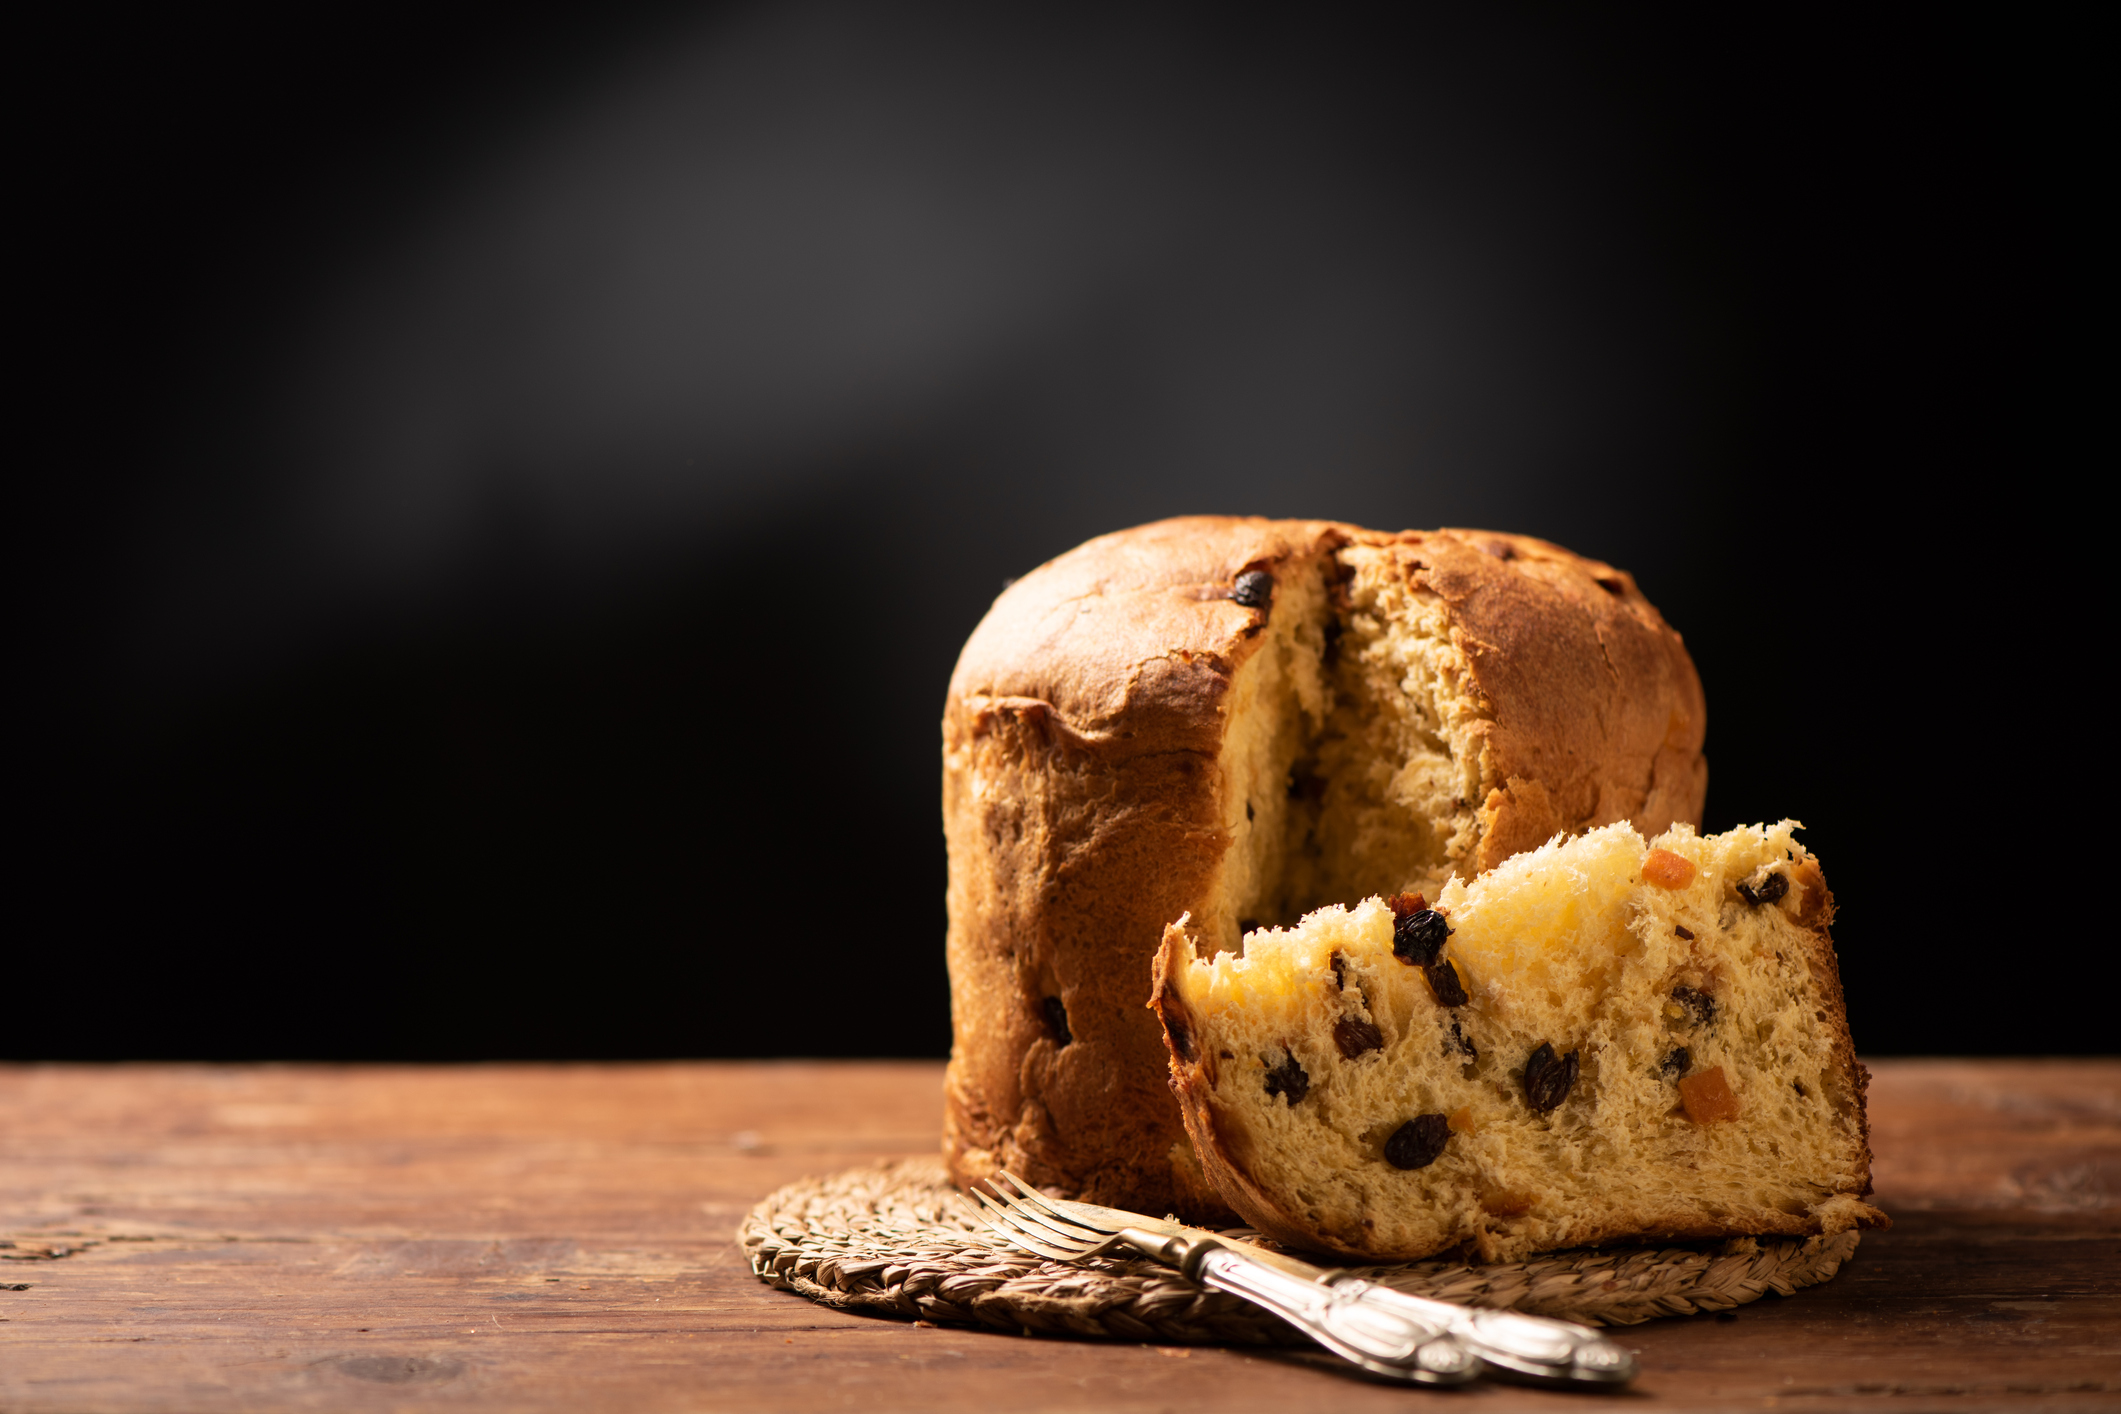 Panettone - What is it, where does it come from, and how is it made?